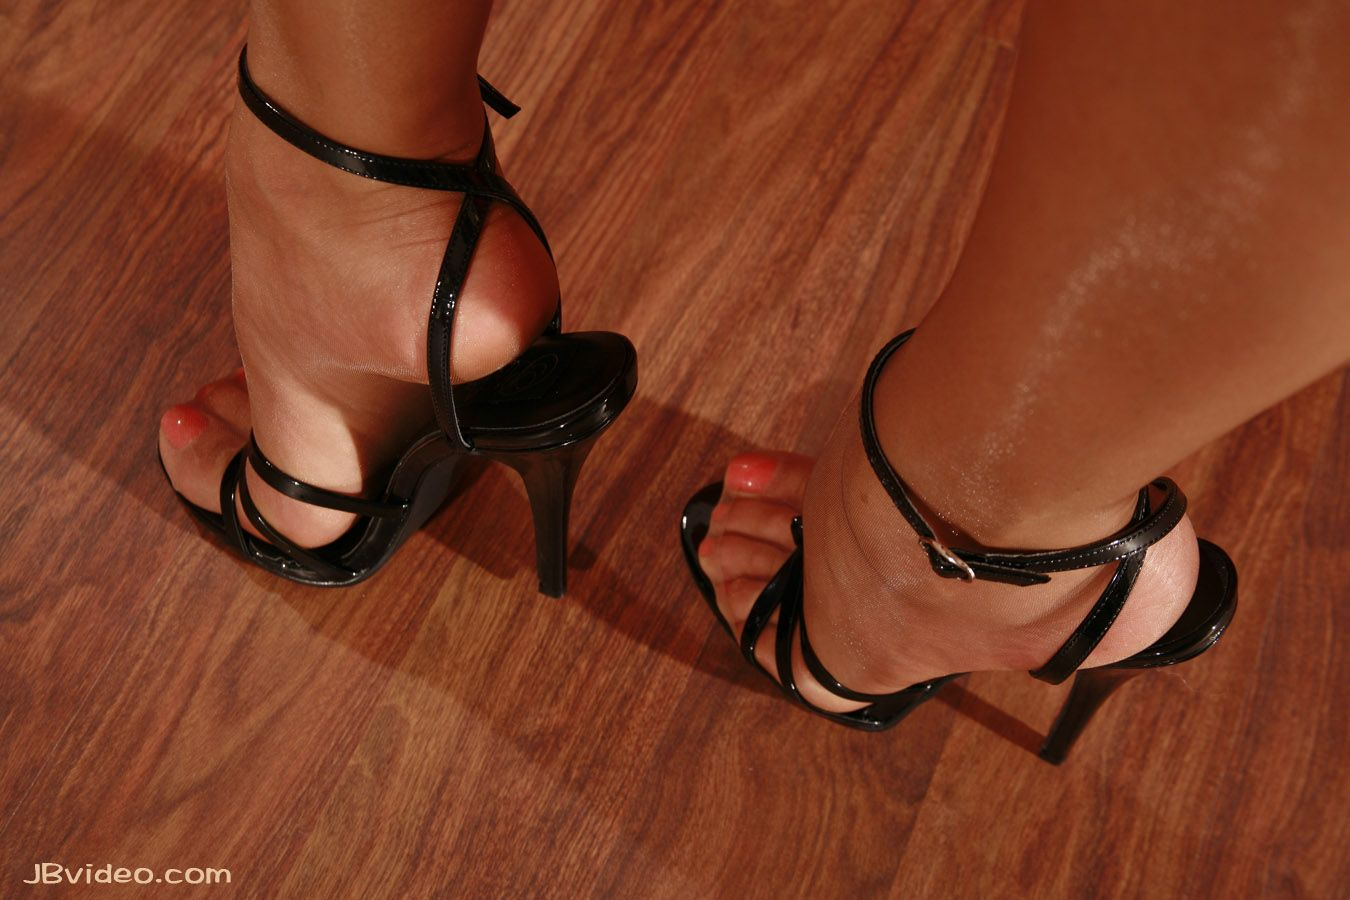 Pantyhose and toes fast with